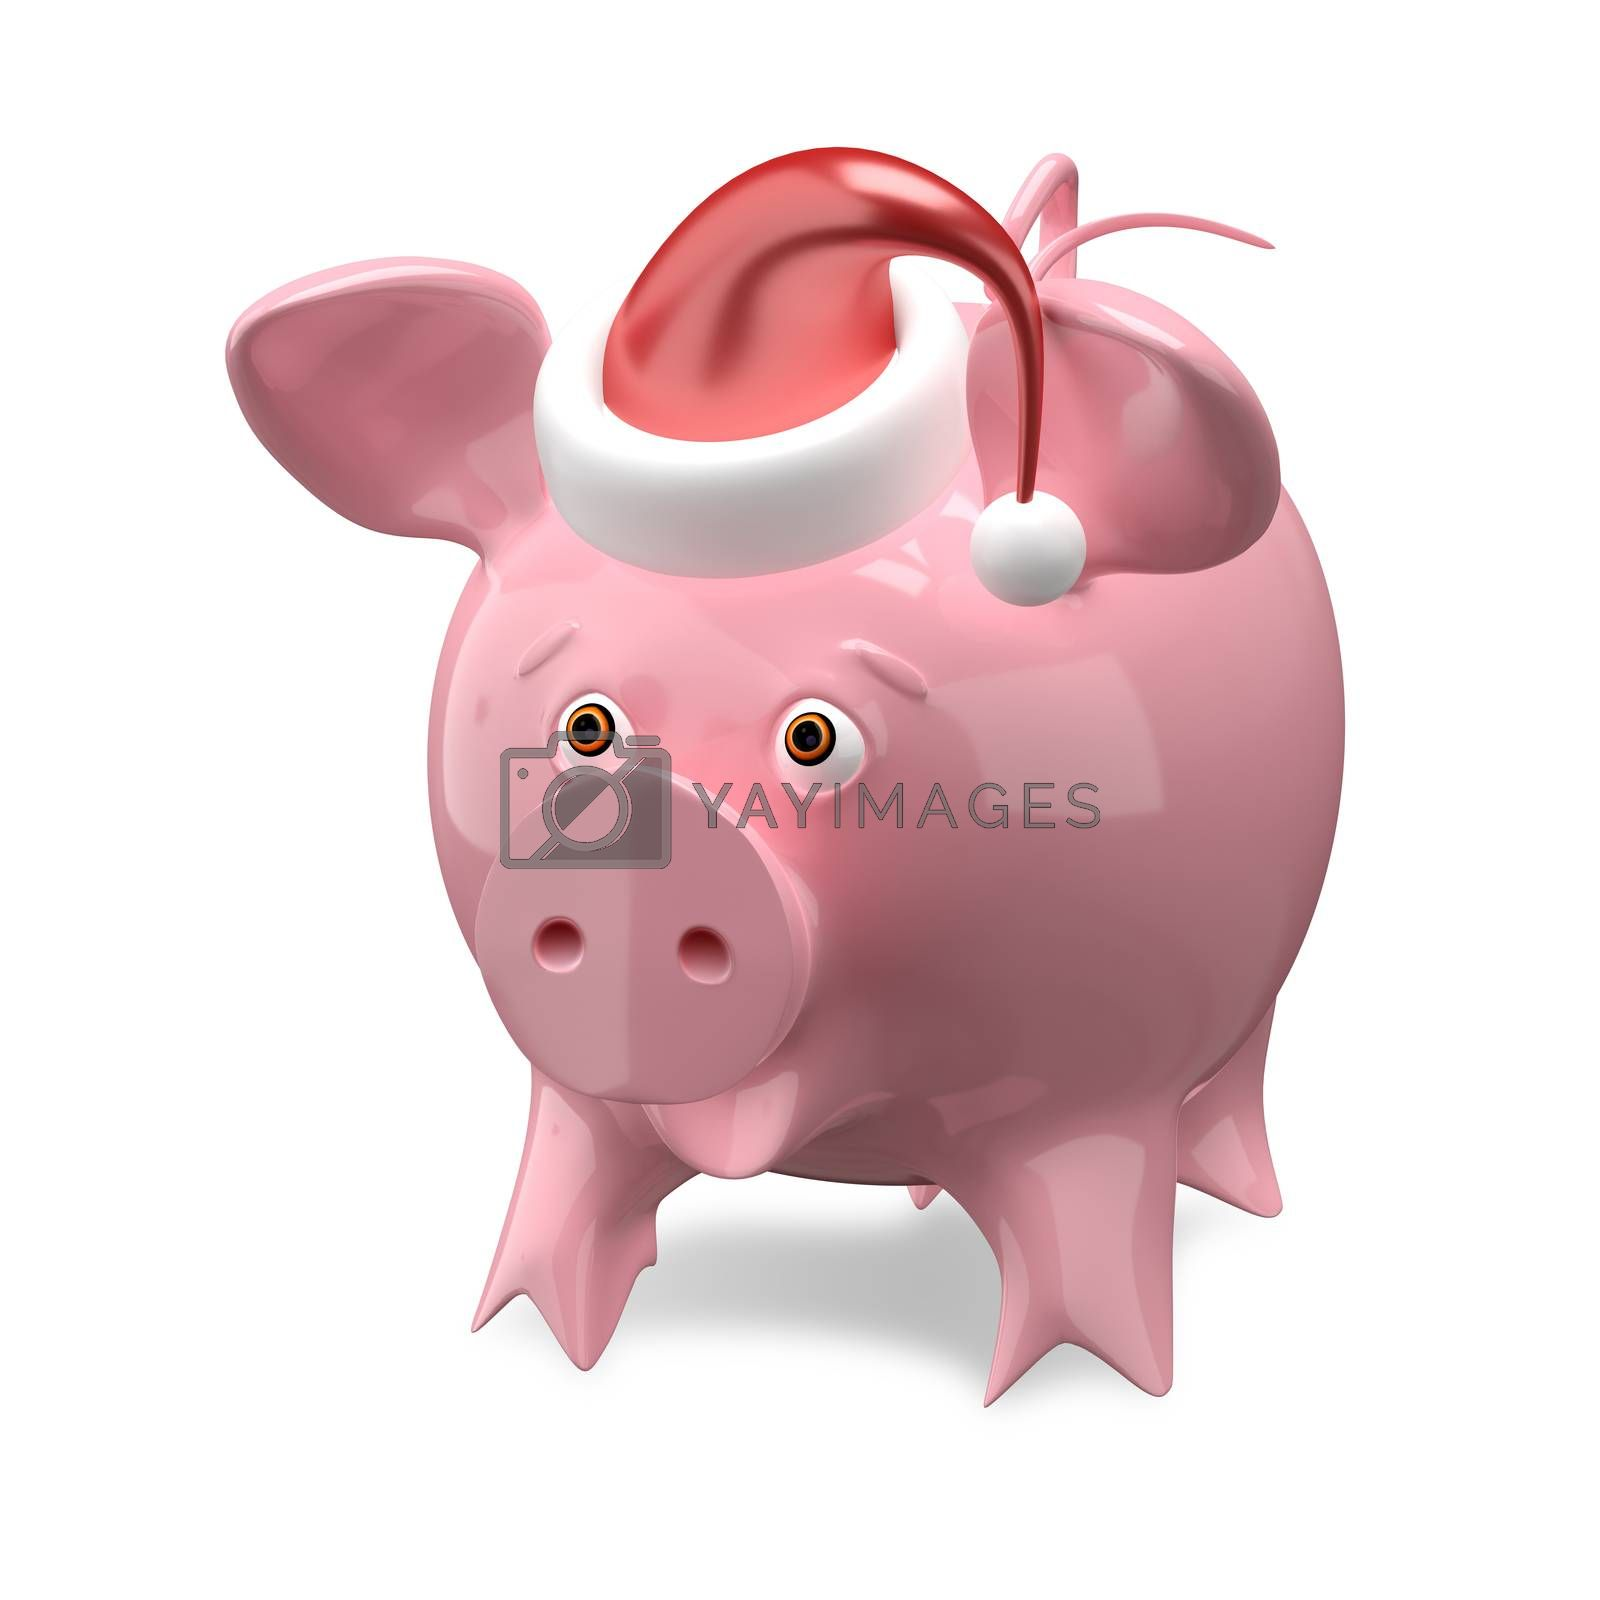 3D Illustration of a New Year Pig in a Cap on White Background